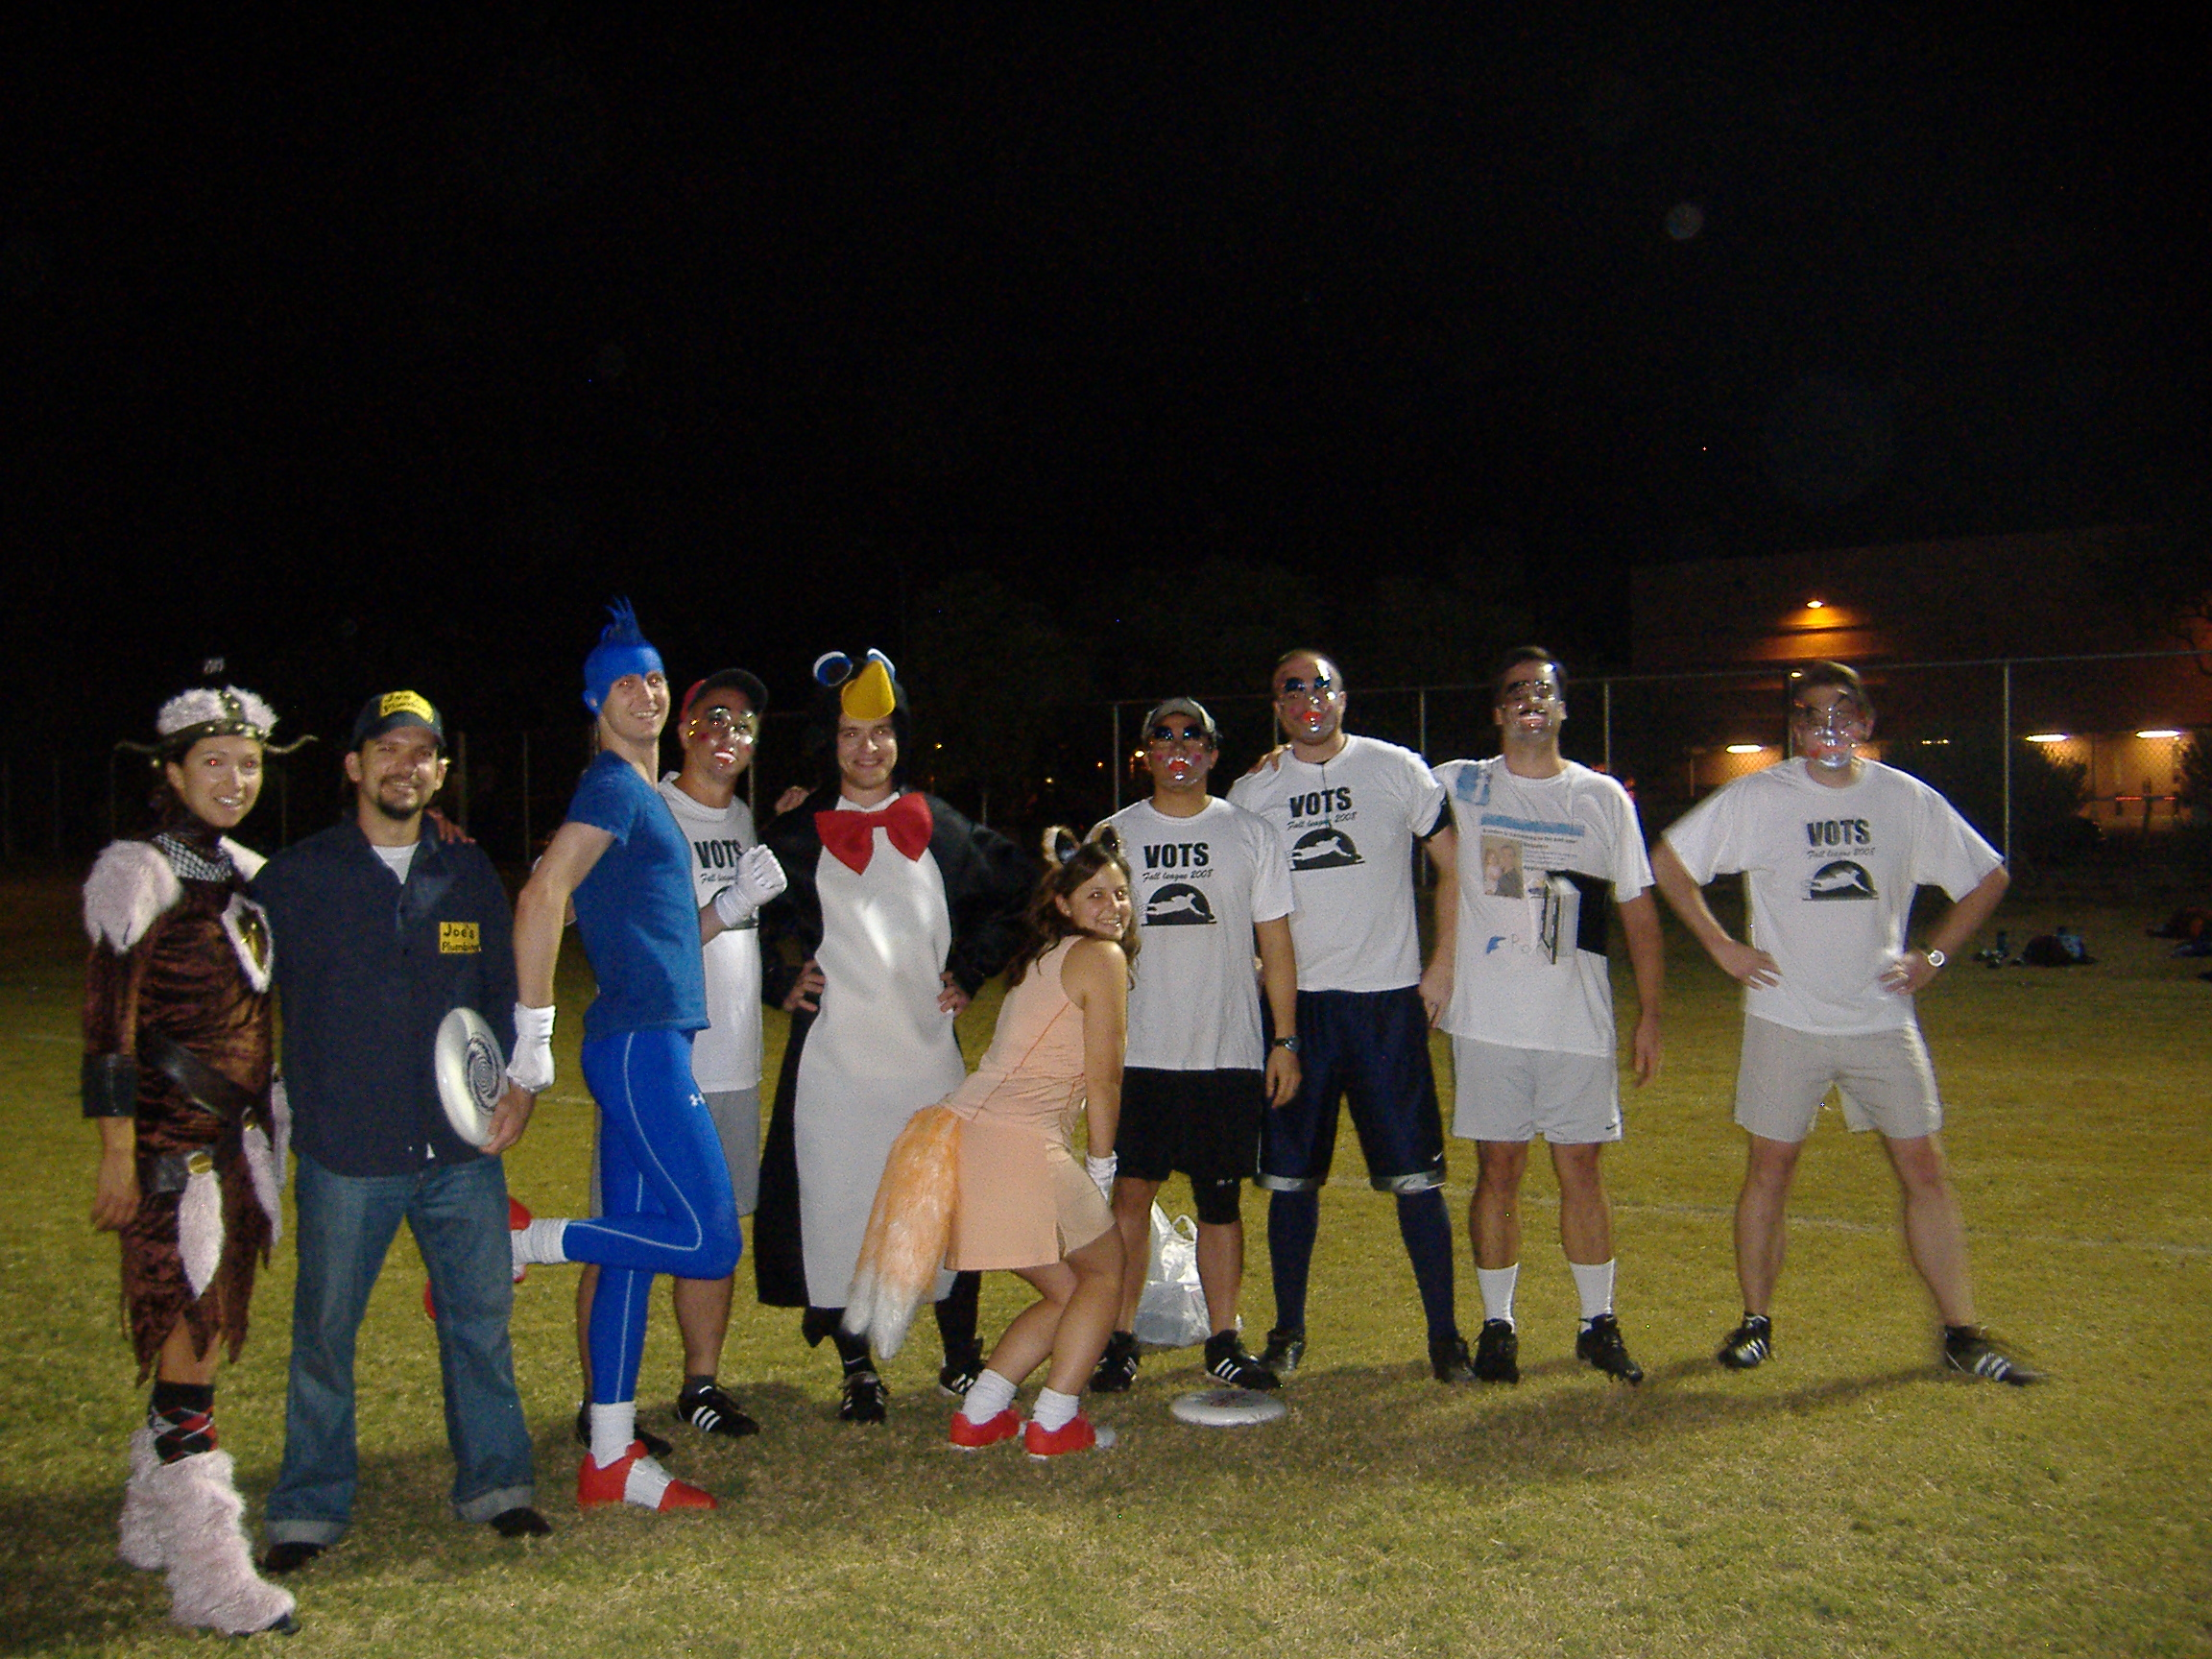 The team, Wii Huck, in costume.